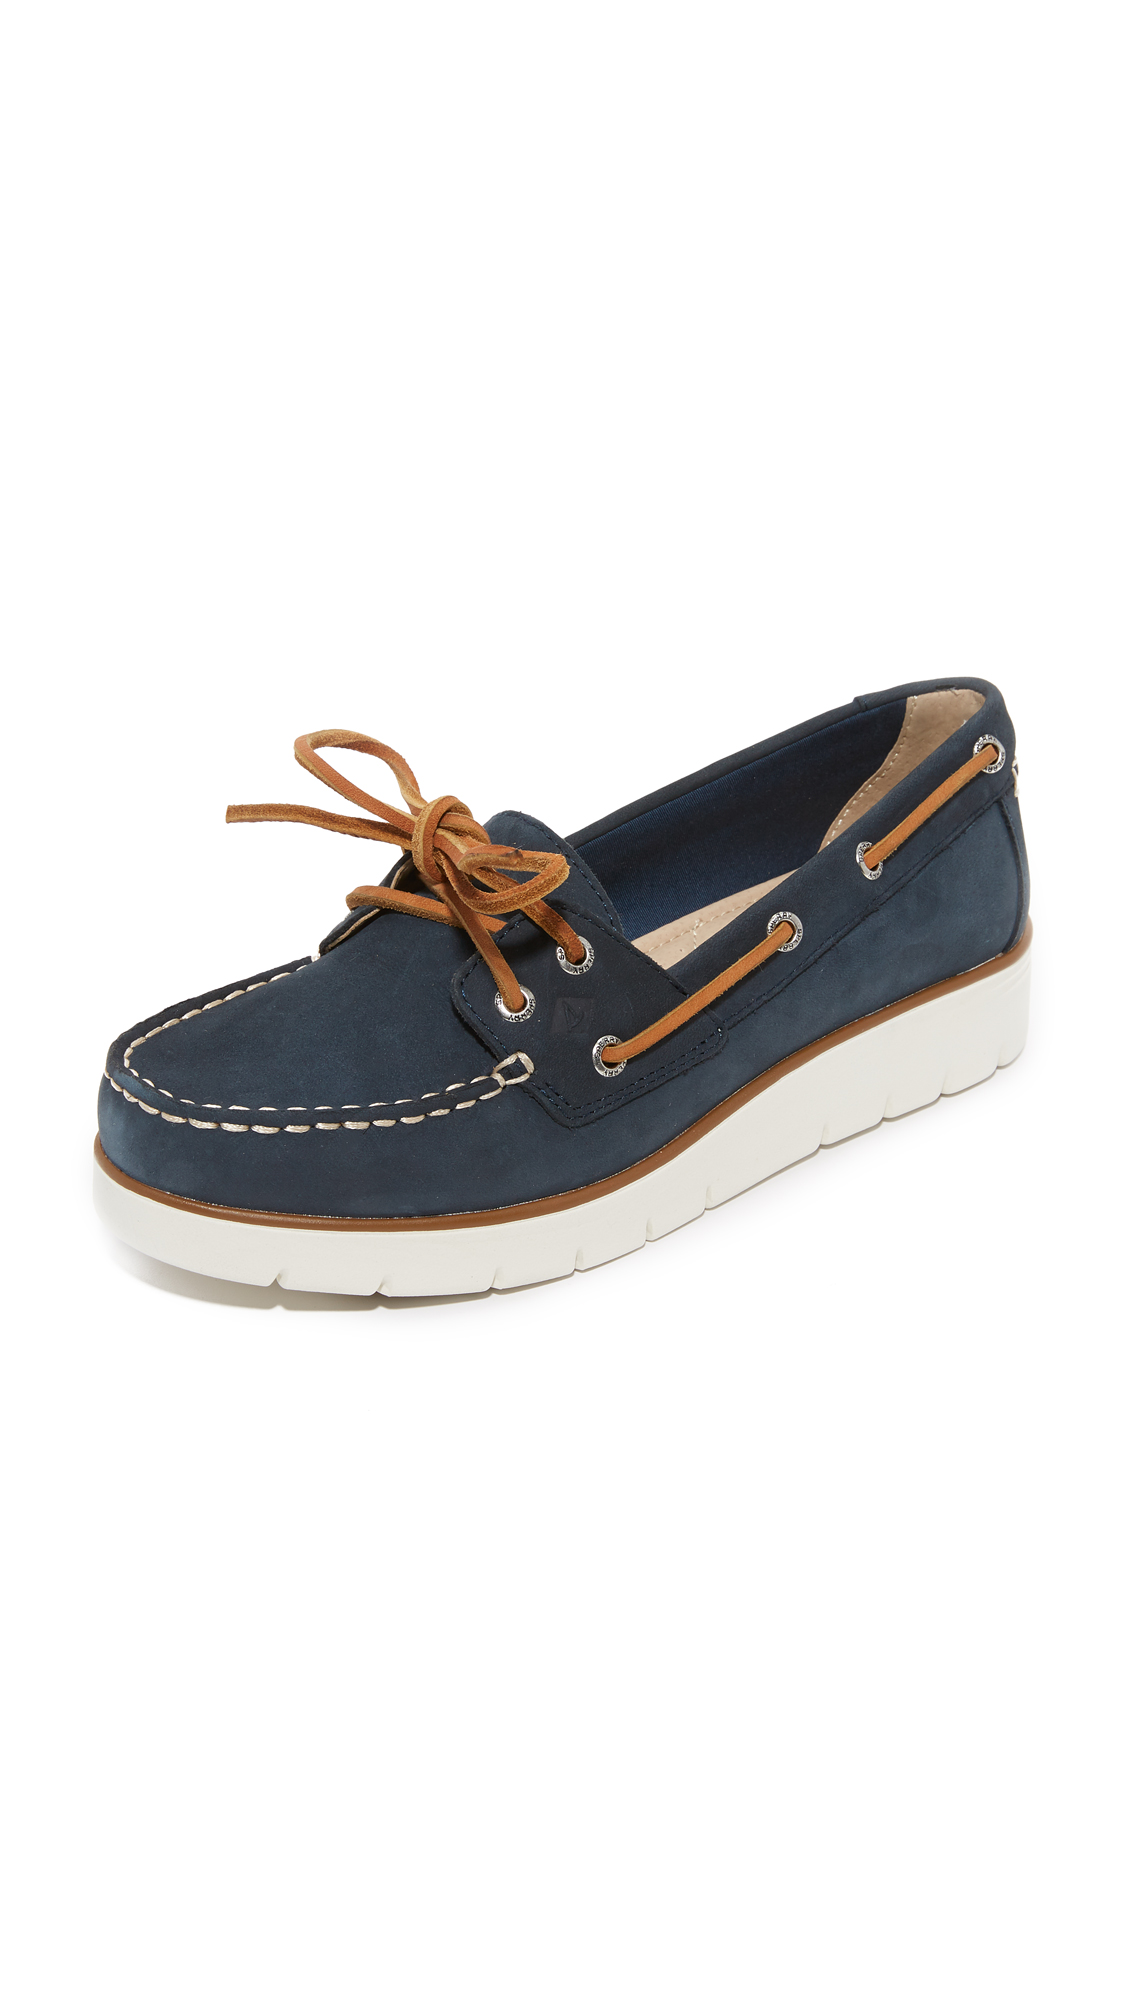 Sperry Azur Cora Boat Shoes - Navy